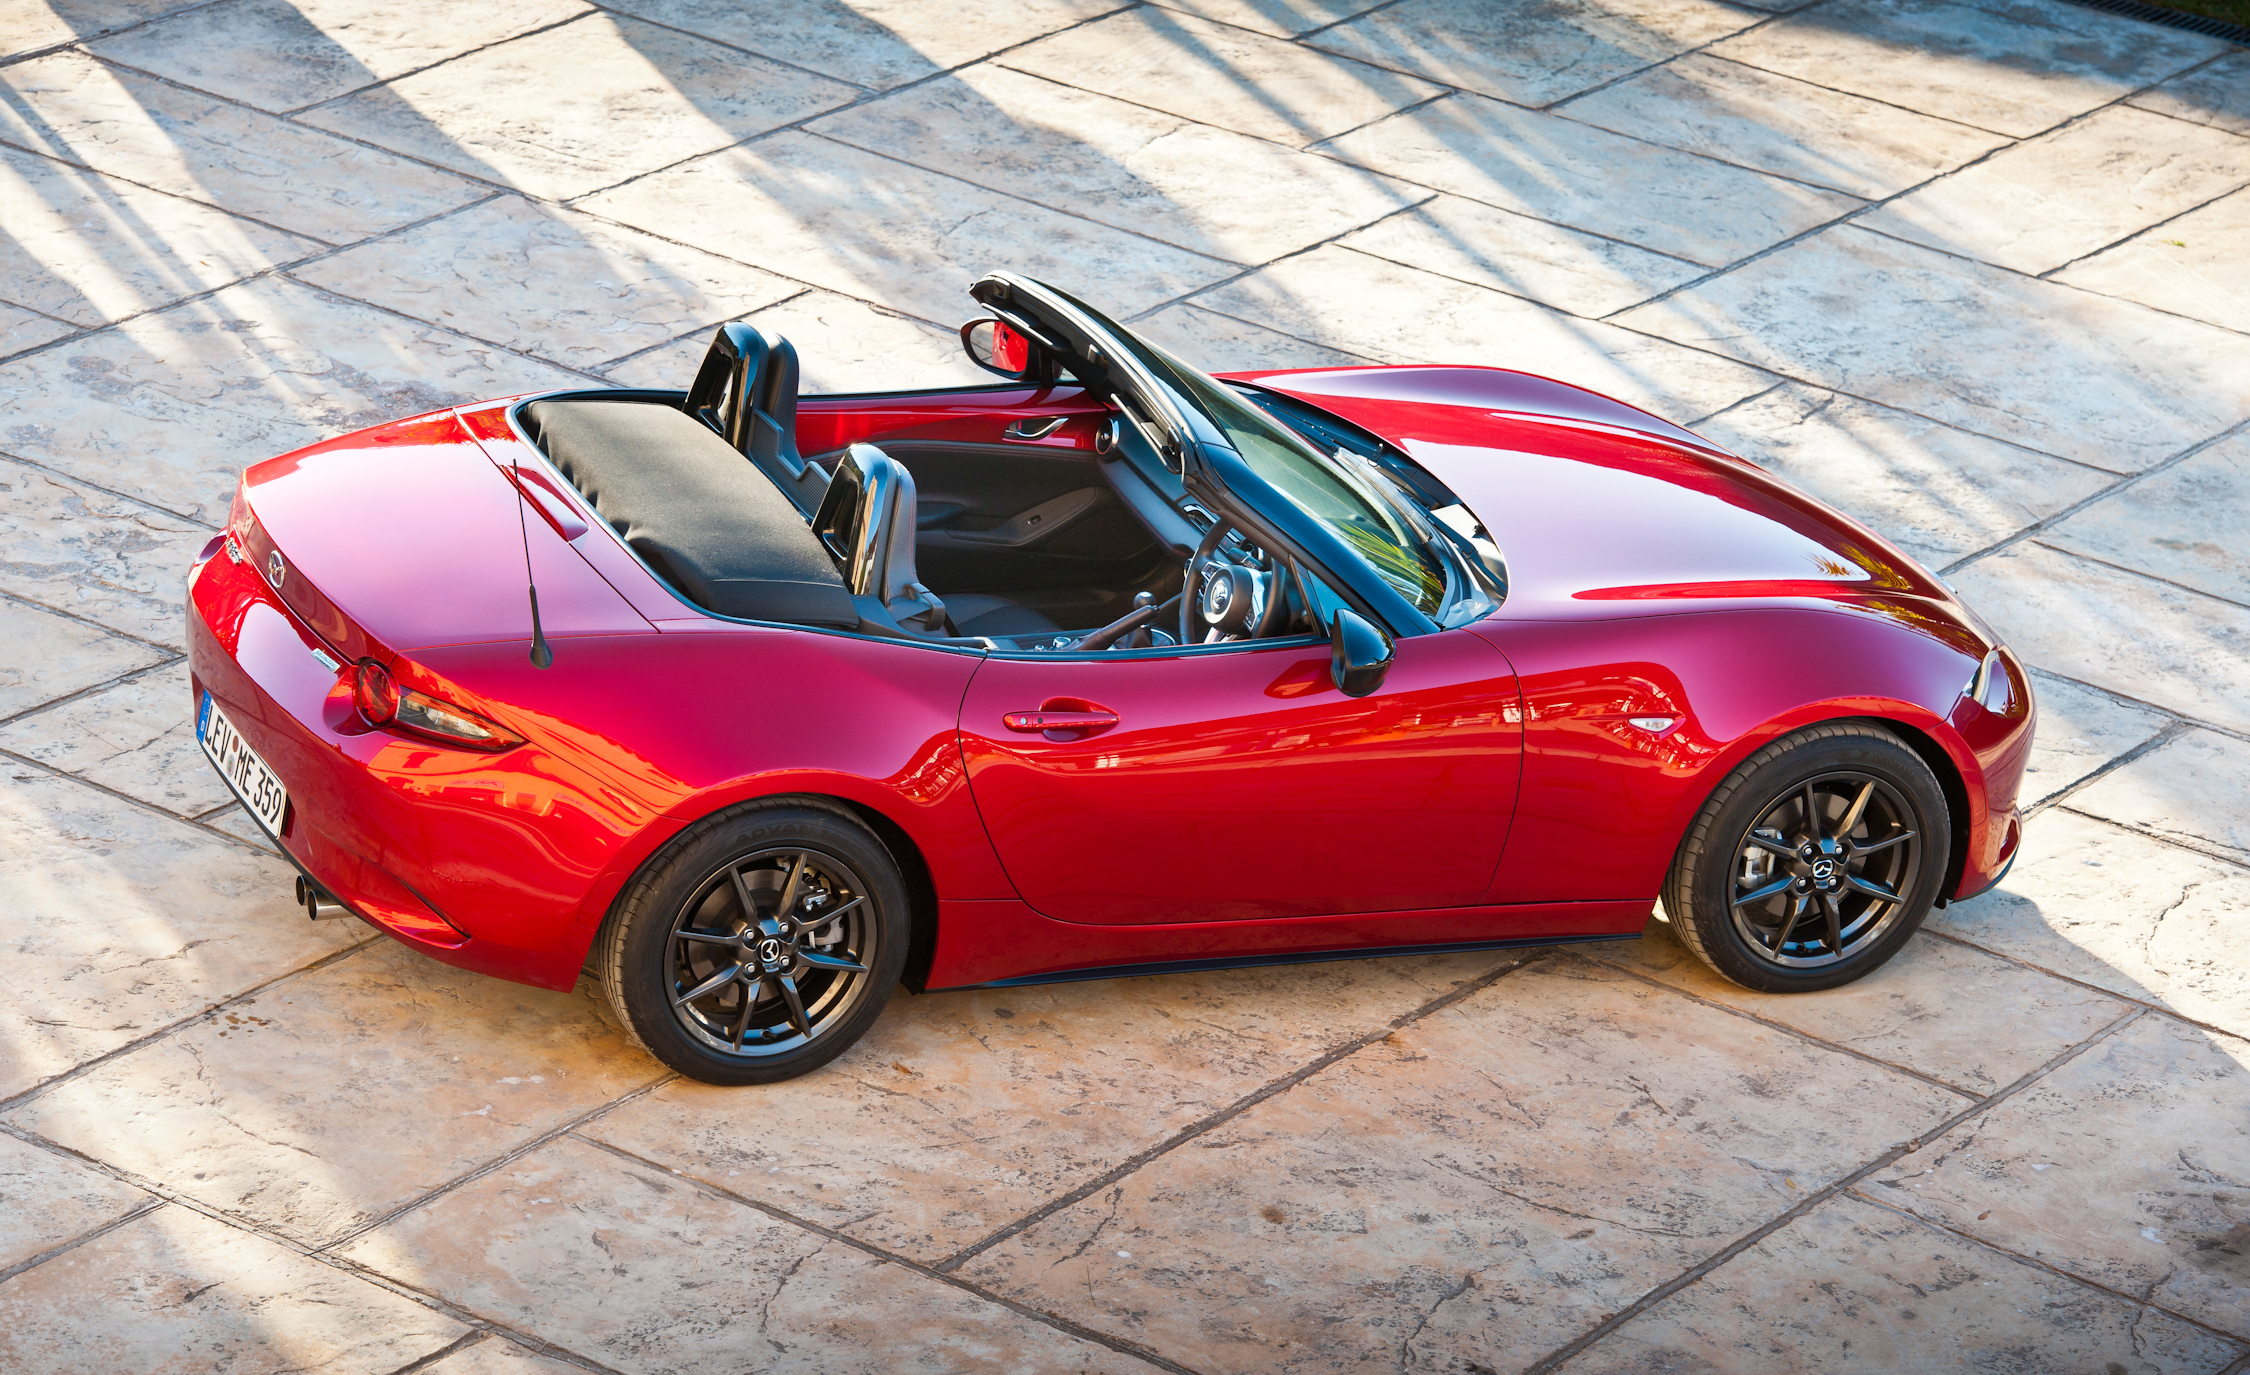 2016 mazda mx 5 miata review for overall performance 6645 cars performance reviews and test. Black Bedroom Furniture Sets. Home Design Ideas